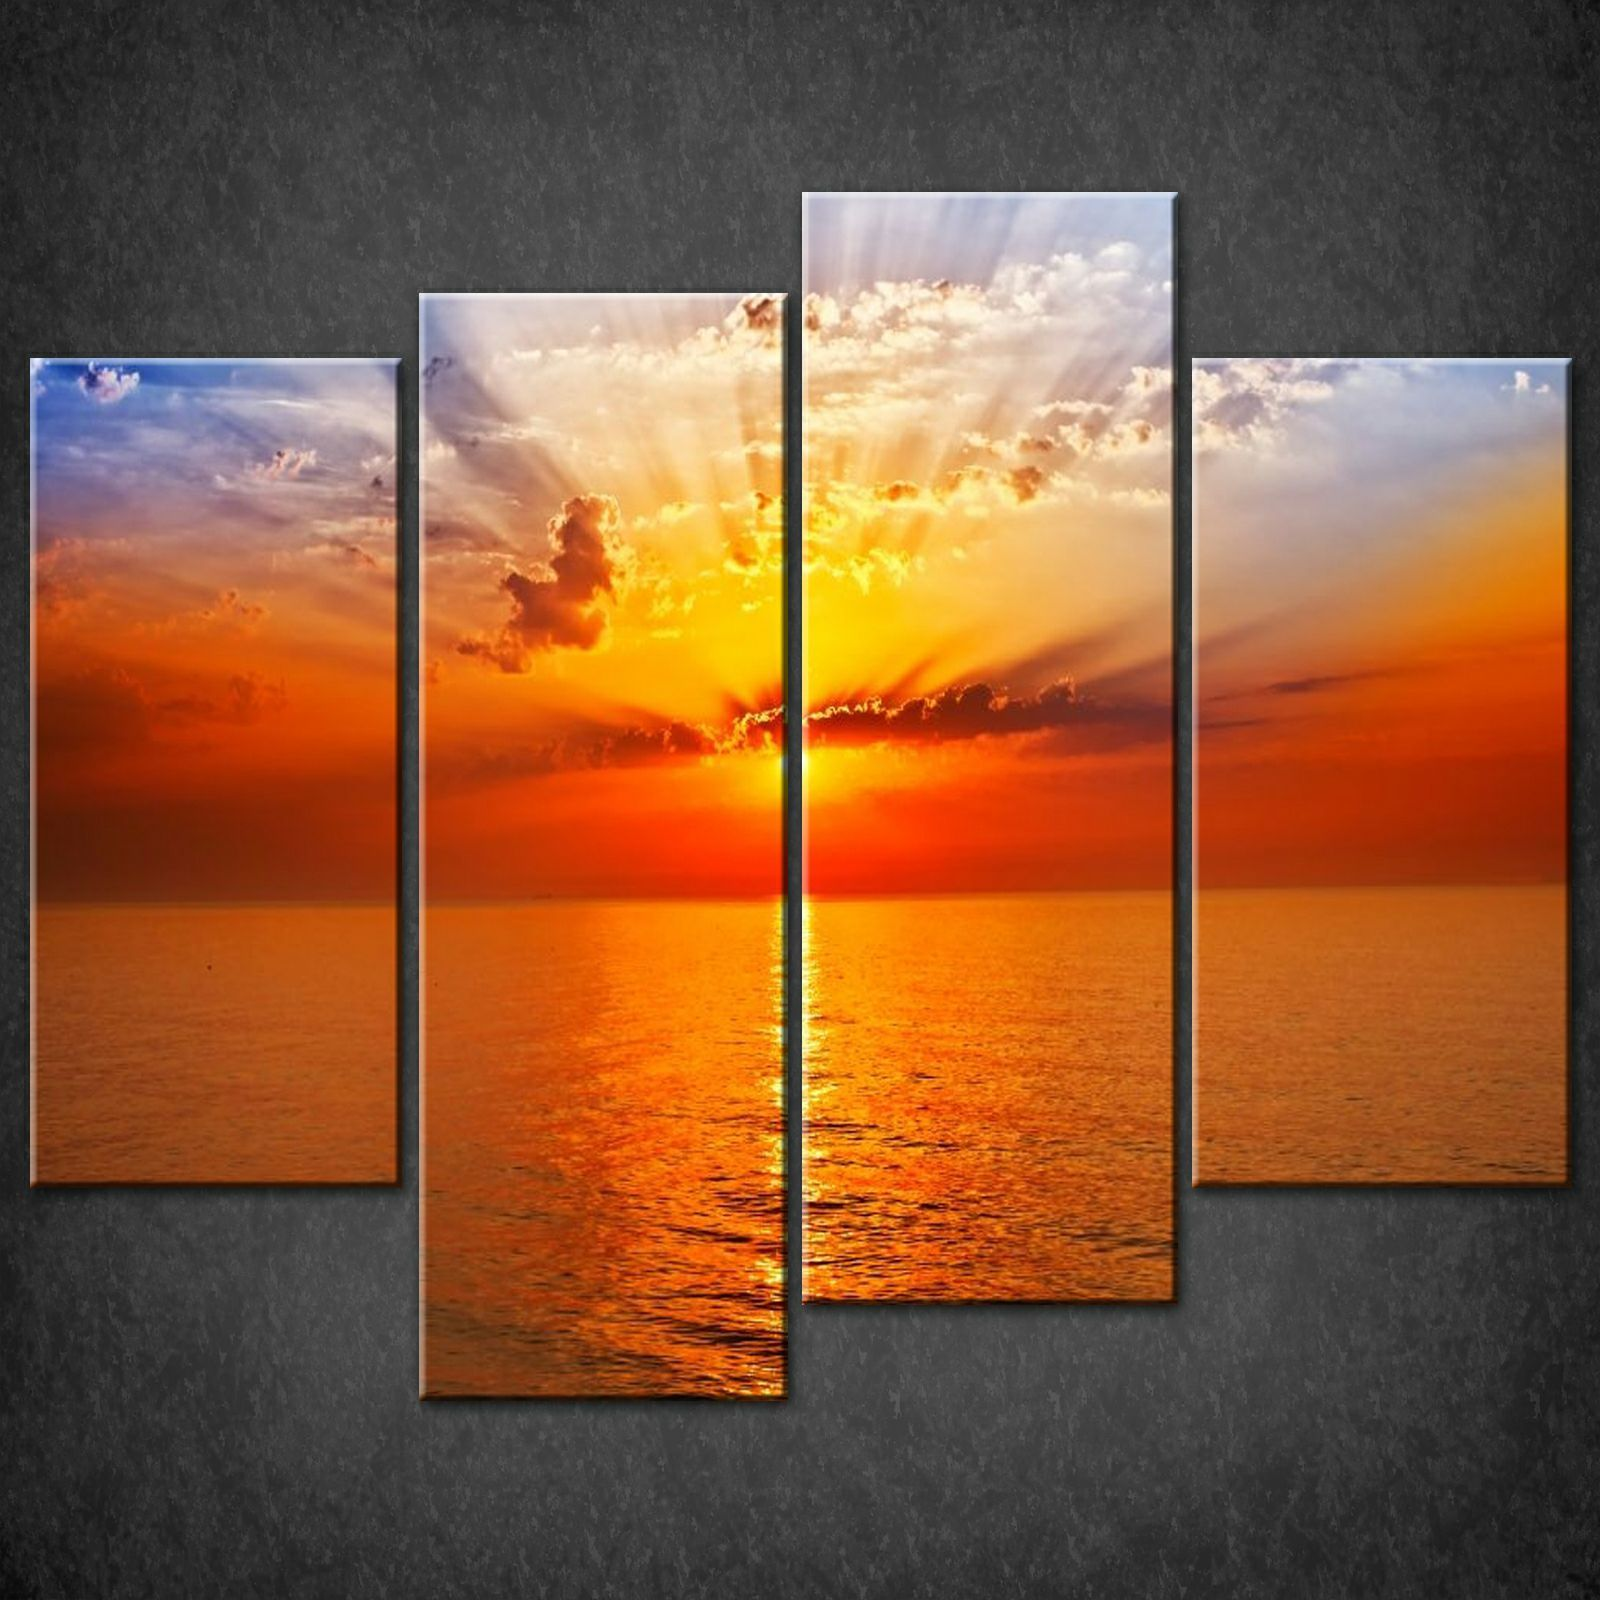 Wall Decorations Orange : Canvas print pictures high quality handmade free next